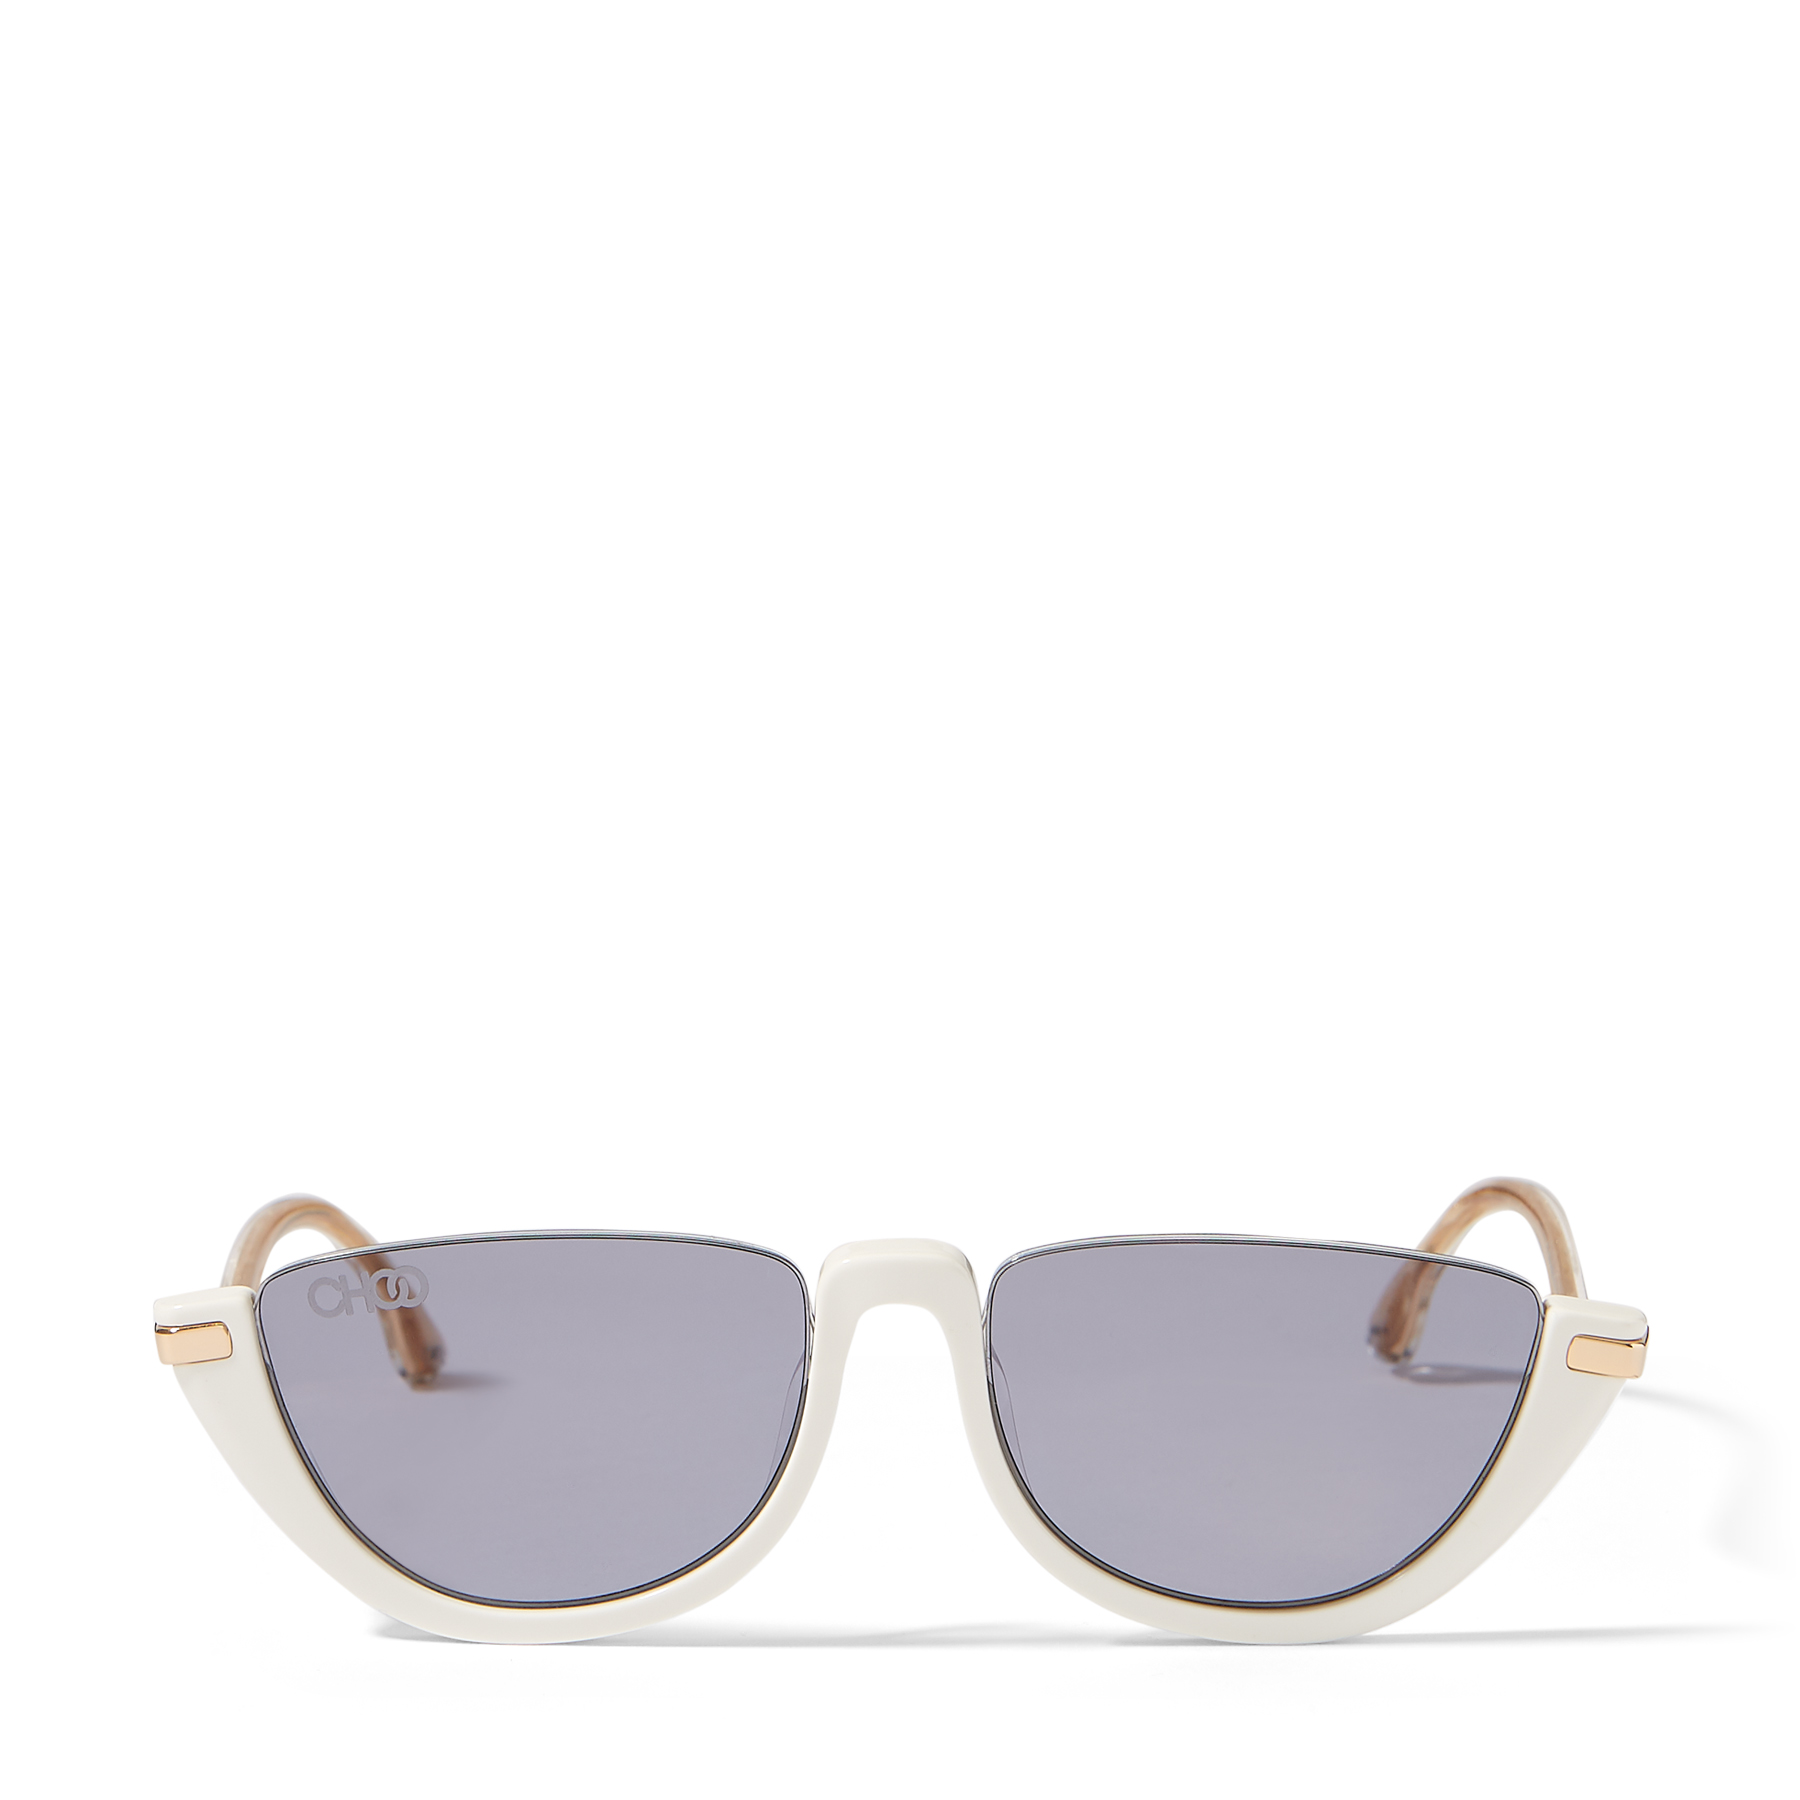 Our white acetate IONA cat eye sunglasses are the epitome of contemporary chic. They\\\'re crafted in Italy with directional shimmering temples, and set set with mauve-shaded mirror lenses that continue the mood.